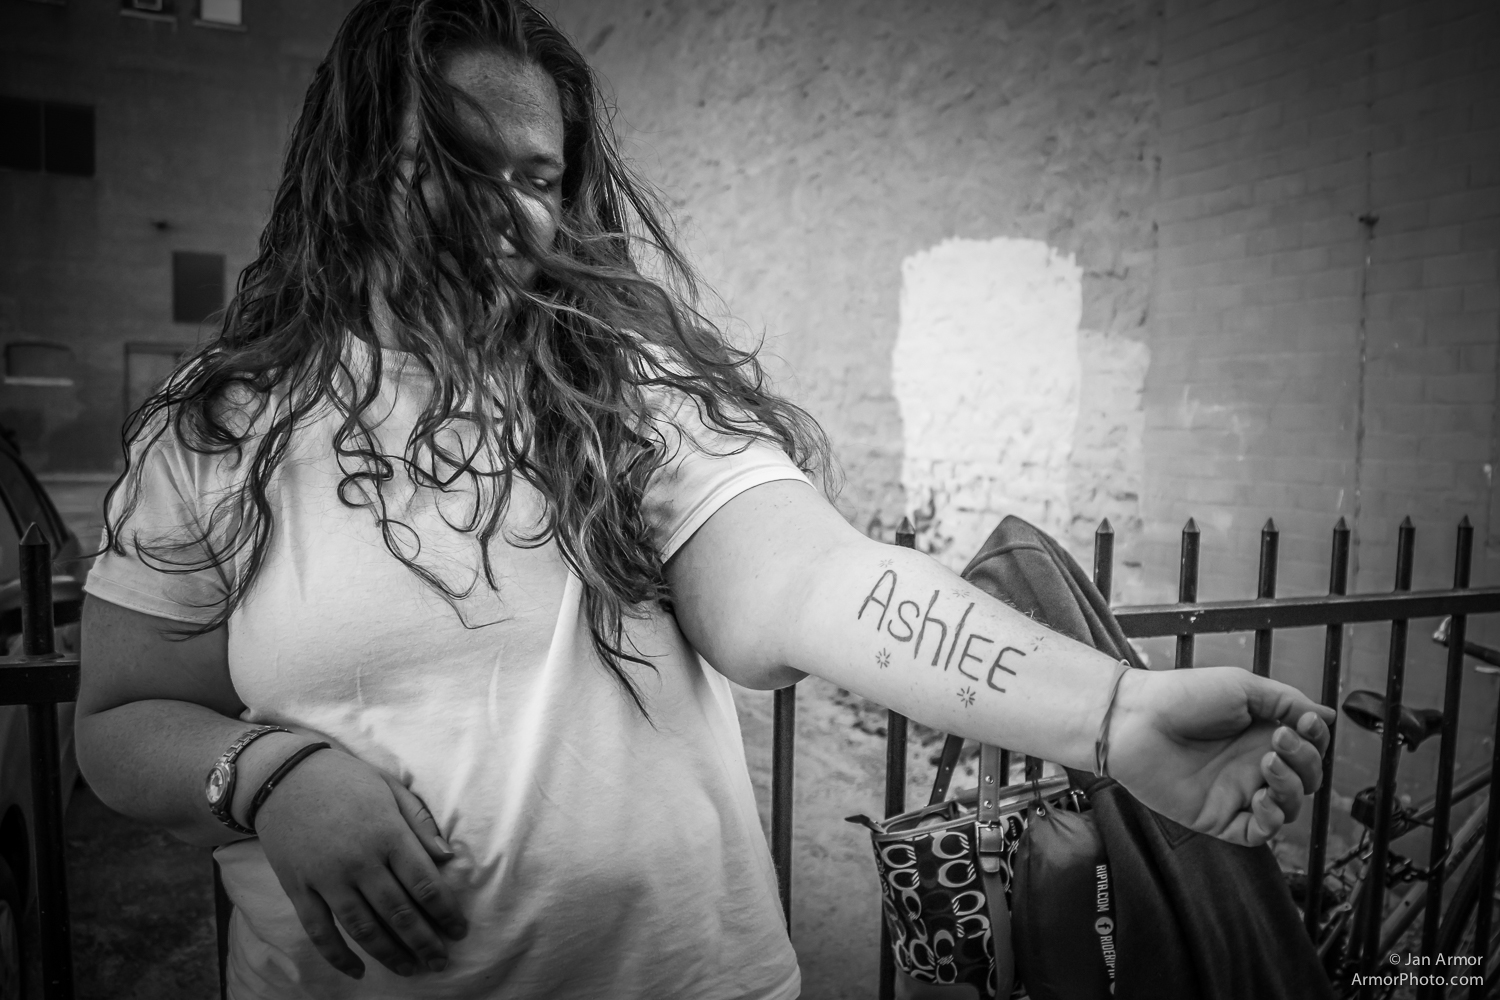 Ashlee asked me to take pictures of her so she can give themtoa friend who is in prison.